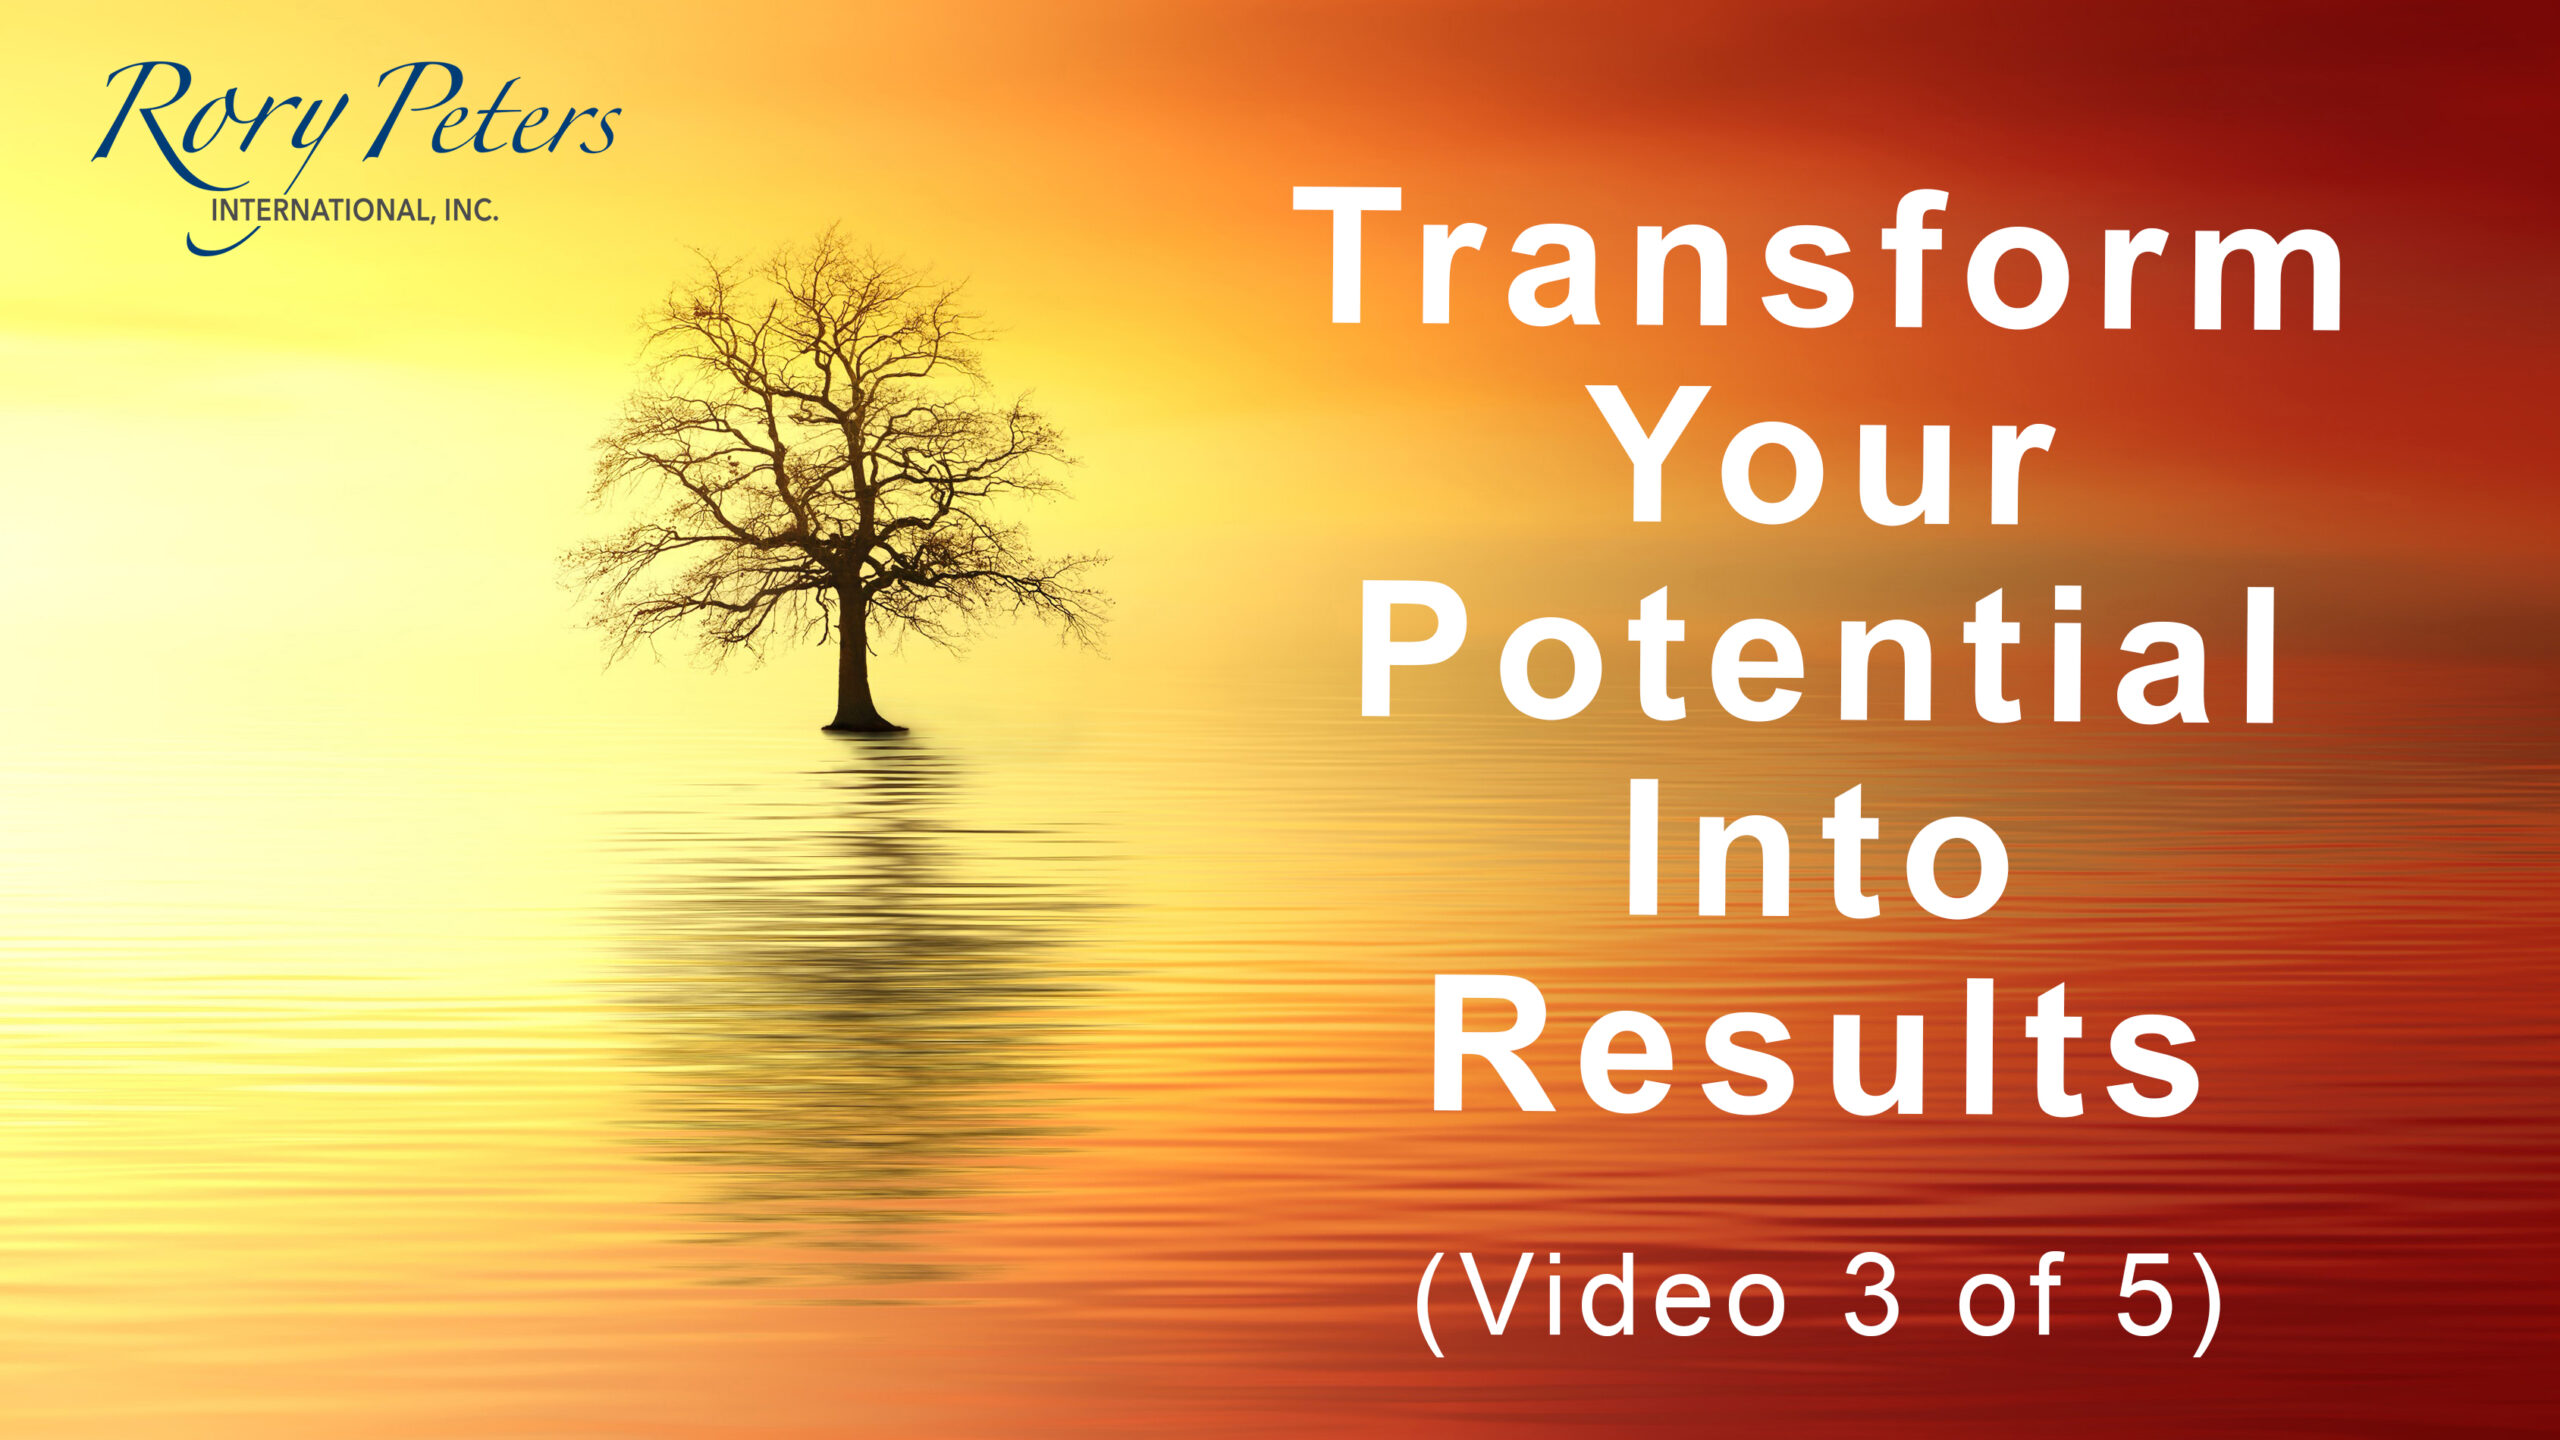 Transform Your Potential Into Results (1 of 5)Transform Your Potential Into Results (3 of 5)